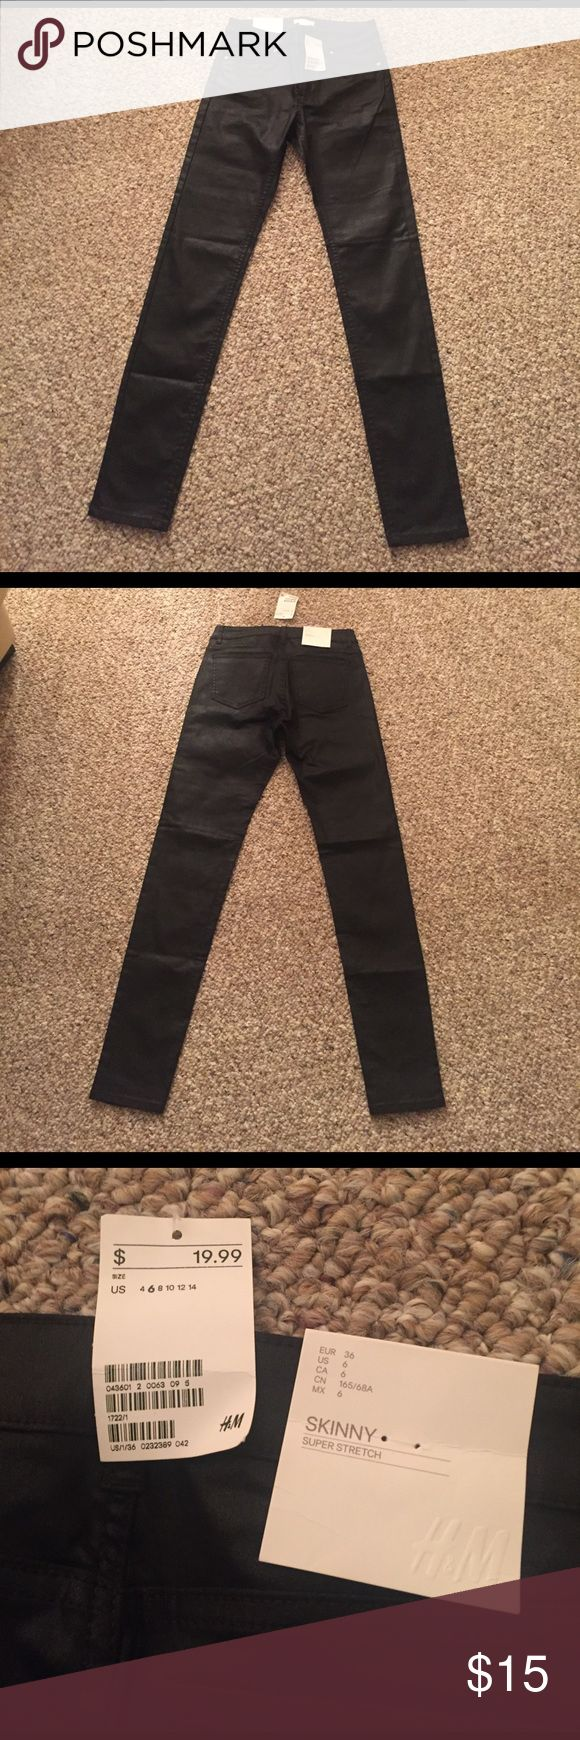 NWT - H&M Black faux Leather skinny jeans NWT - H&M Black faux Leather skinny jeans. Tags attached, never worn! Super stretch material. H&M Pants Skinny